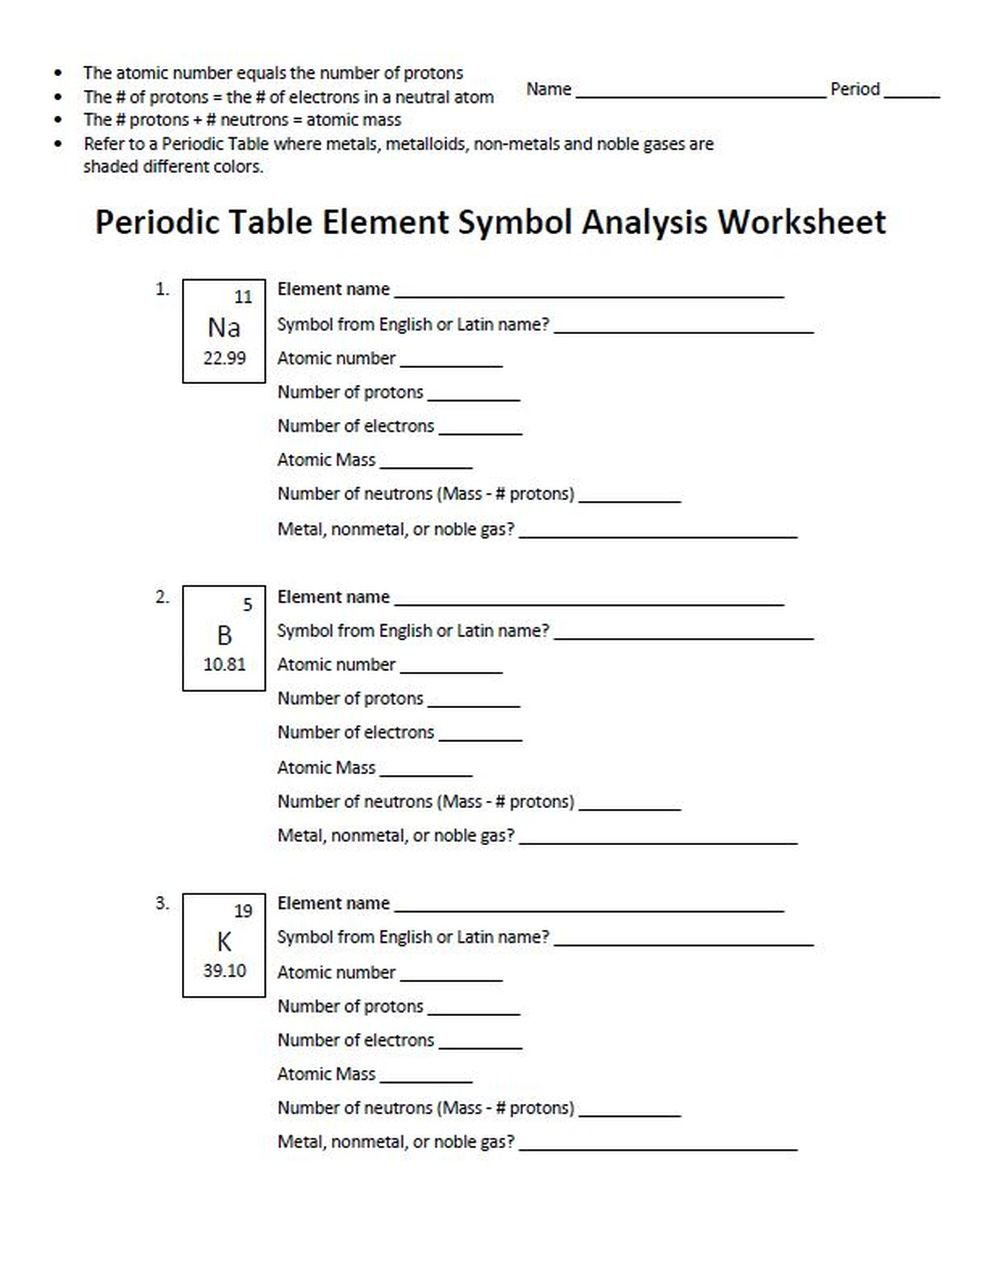 Periodic Table Fun Worksheet Analysis Of Element Symbols On the Periodic Table Worksheet